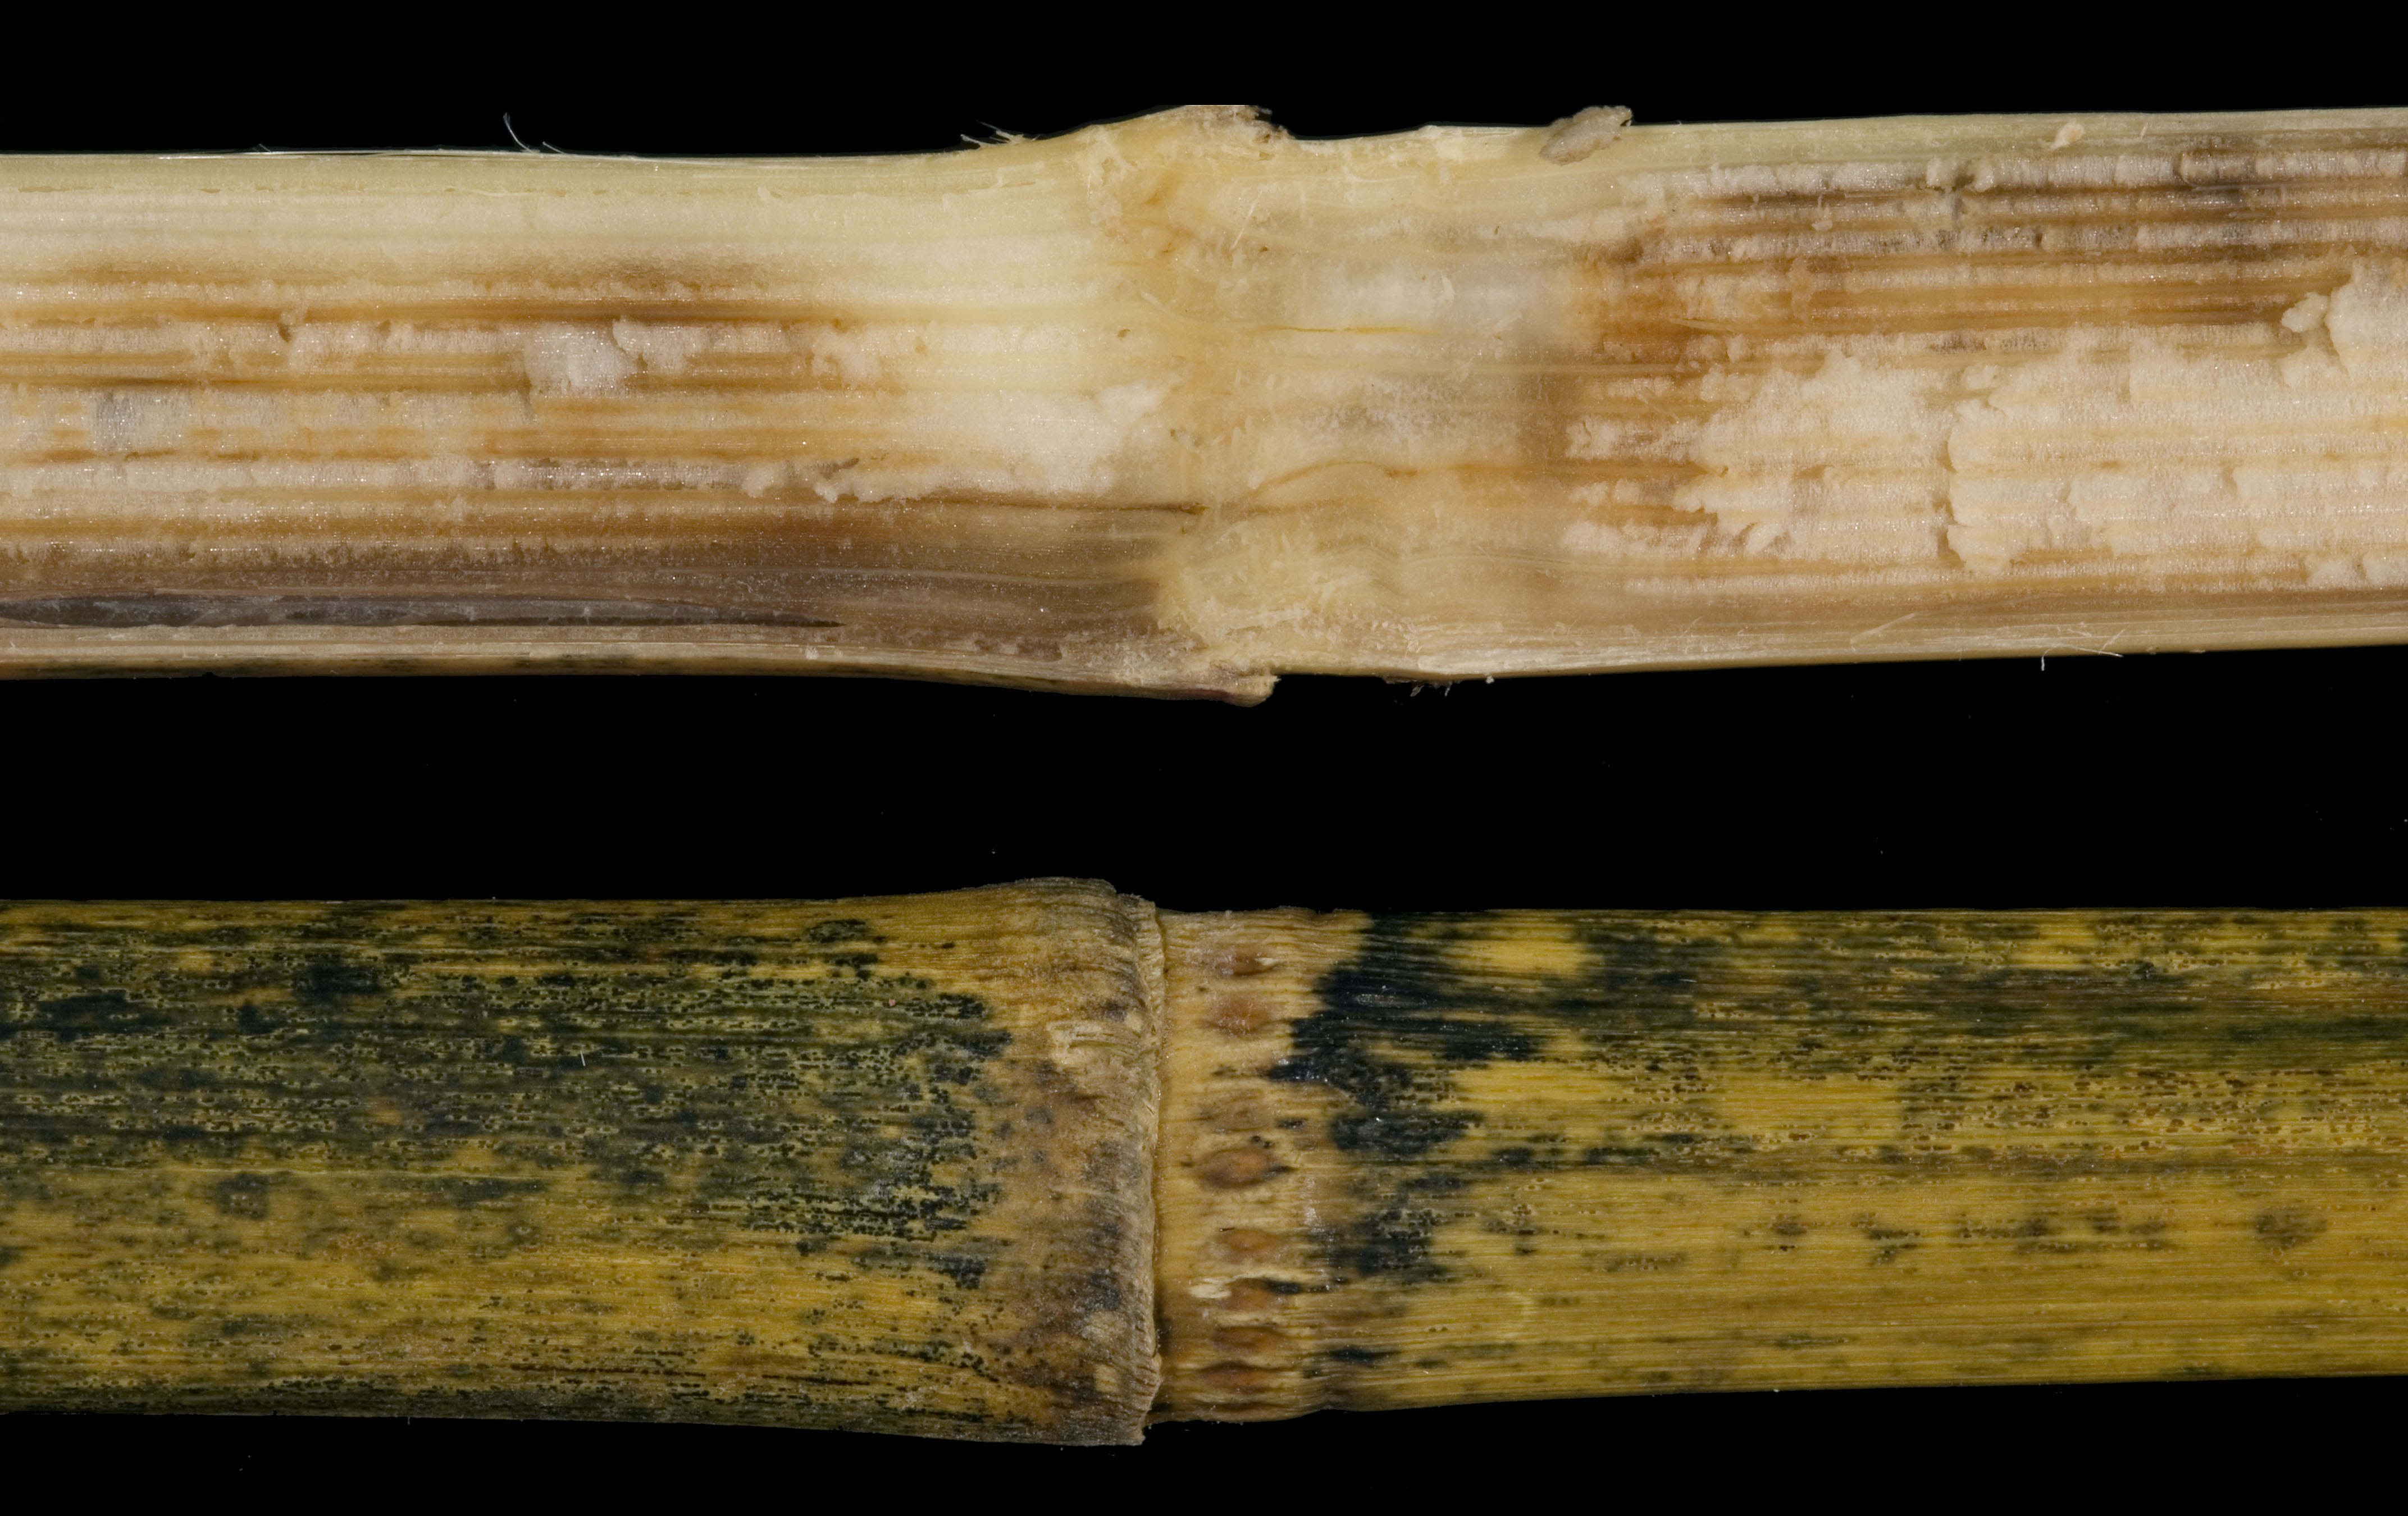 Anthracnose stalk rot symptoms include interior and exterior stalk discoloration.